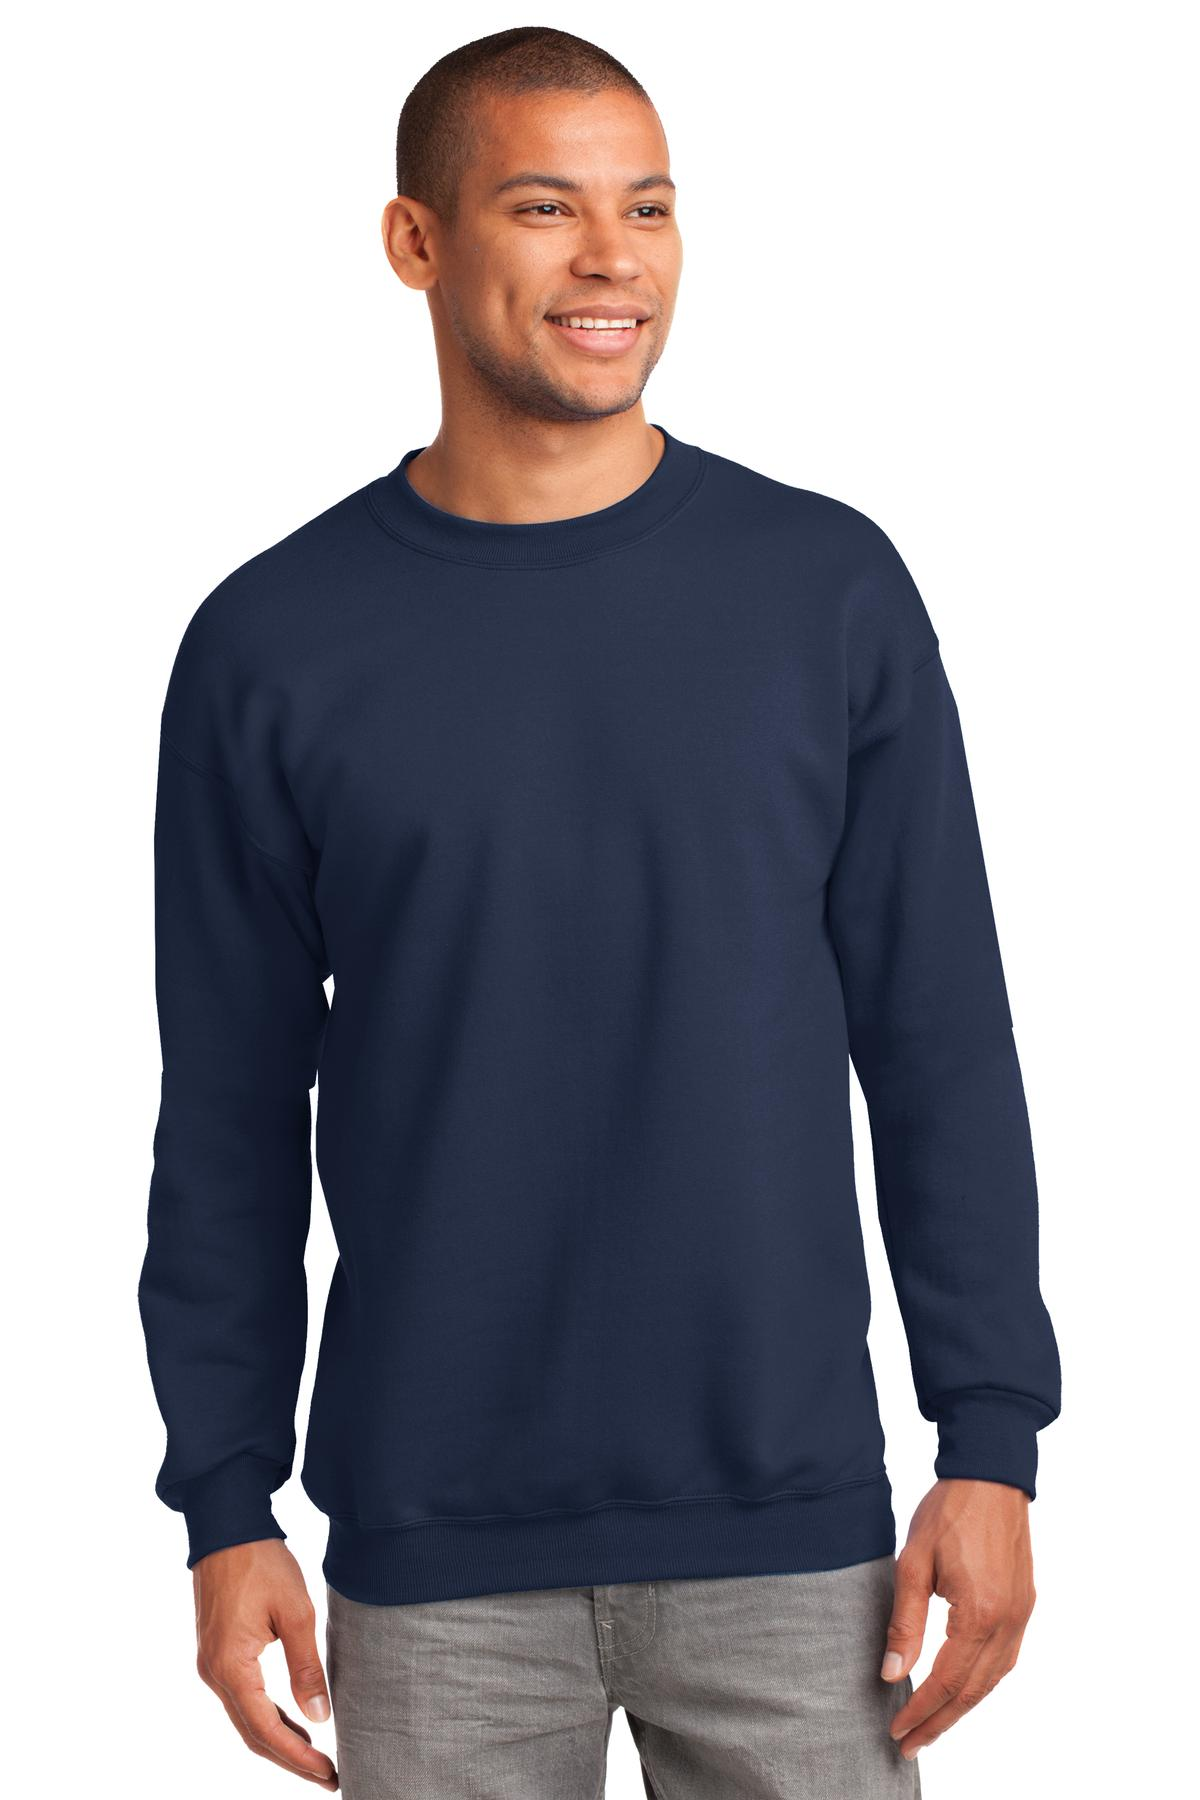 EL PASO POLICE Port & Company® - Essential Fleece Crewneck Sweatshirt.-Port & Company